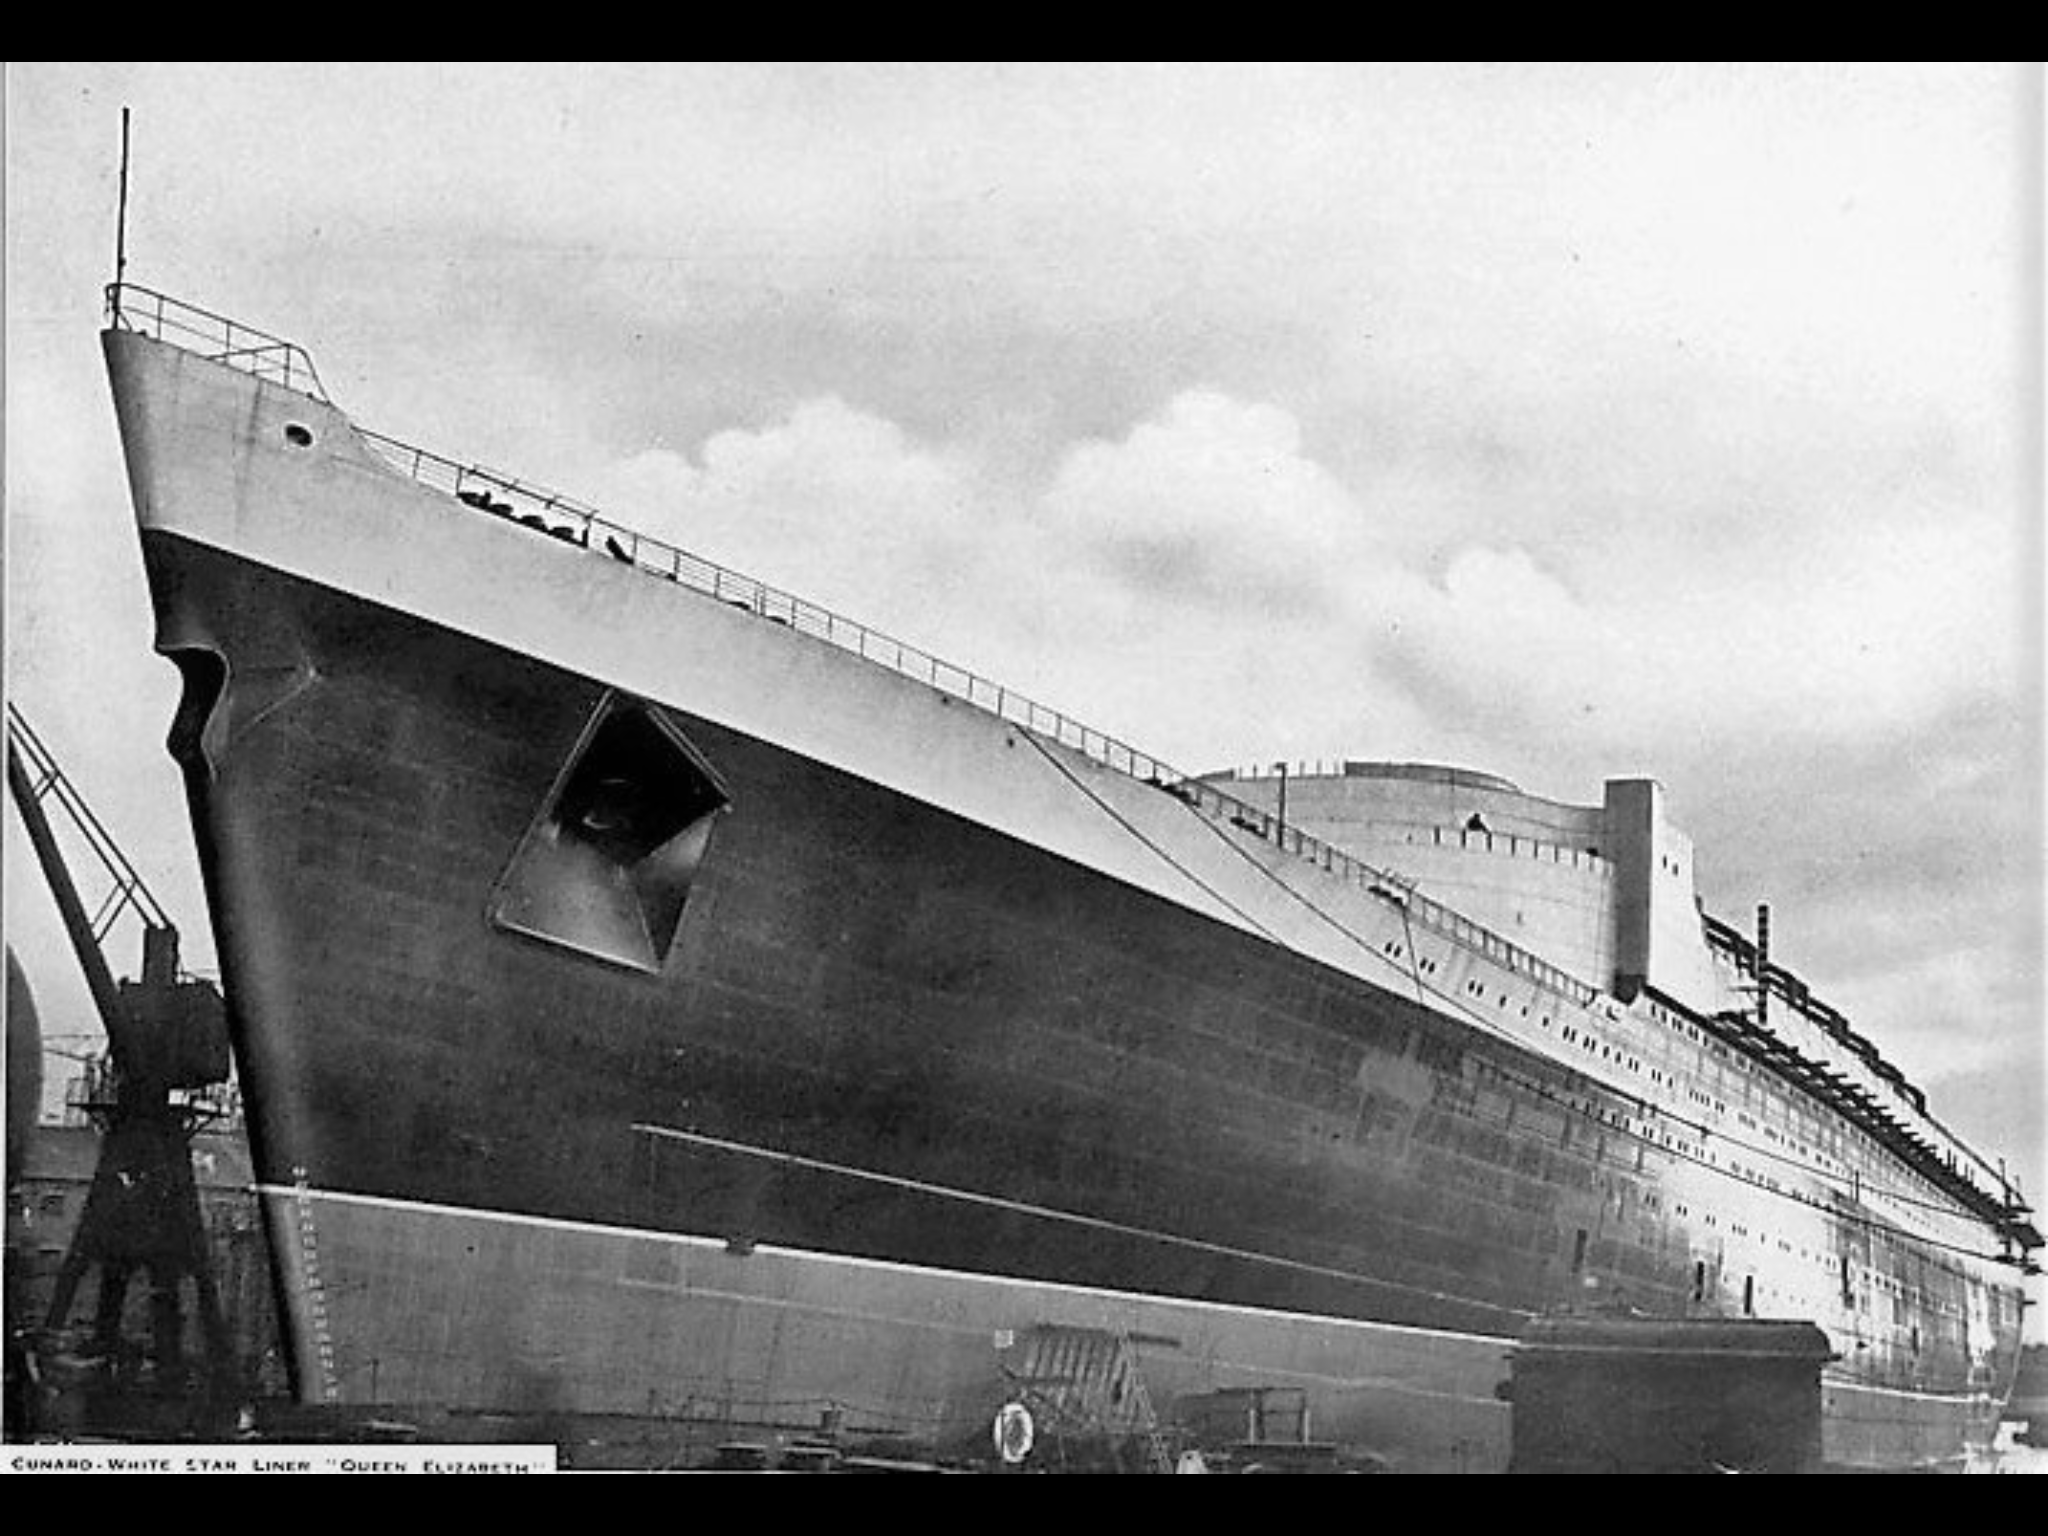 Pin By Oceanic House On Cunard Queen Elizabeth Rms Queen Elizabeth Cunard Queen Elizabeth Cunard Cruise